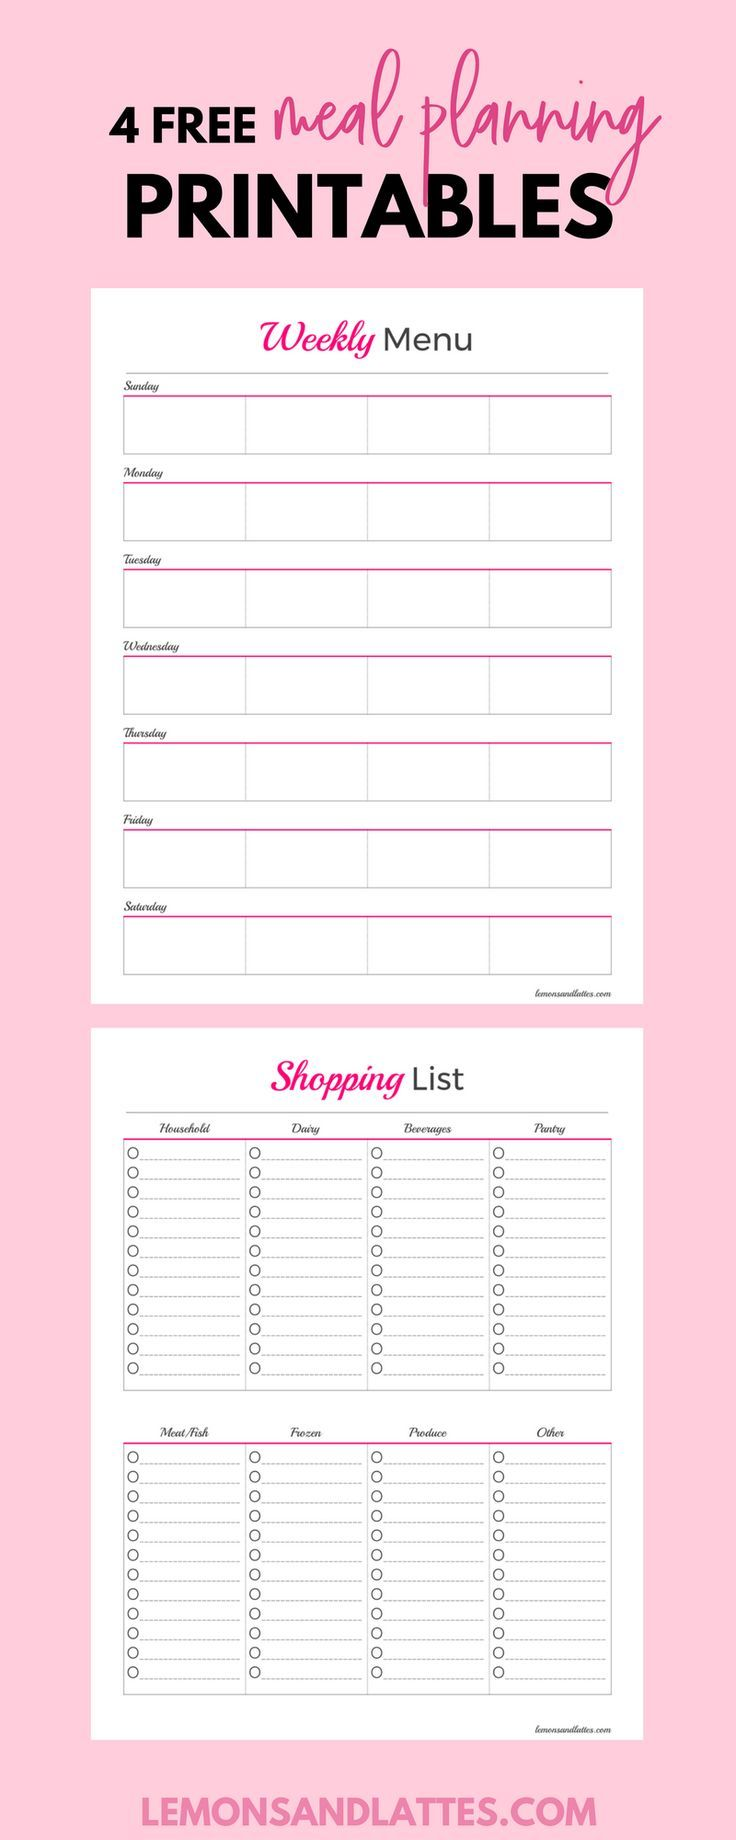 Feeling overwhelmed, trying to save money, or eat healthier? Meal planning printable templates that can help. Sign up for my newsletter and get a grocery list printable, weekly meal plan printable, monthly meal planning printable, and a favorite meals printable!